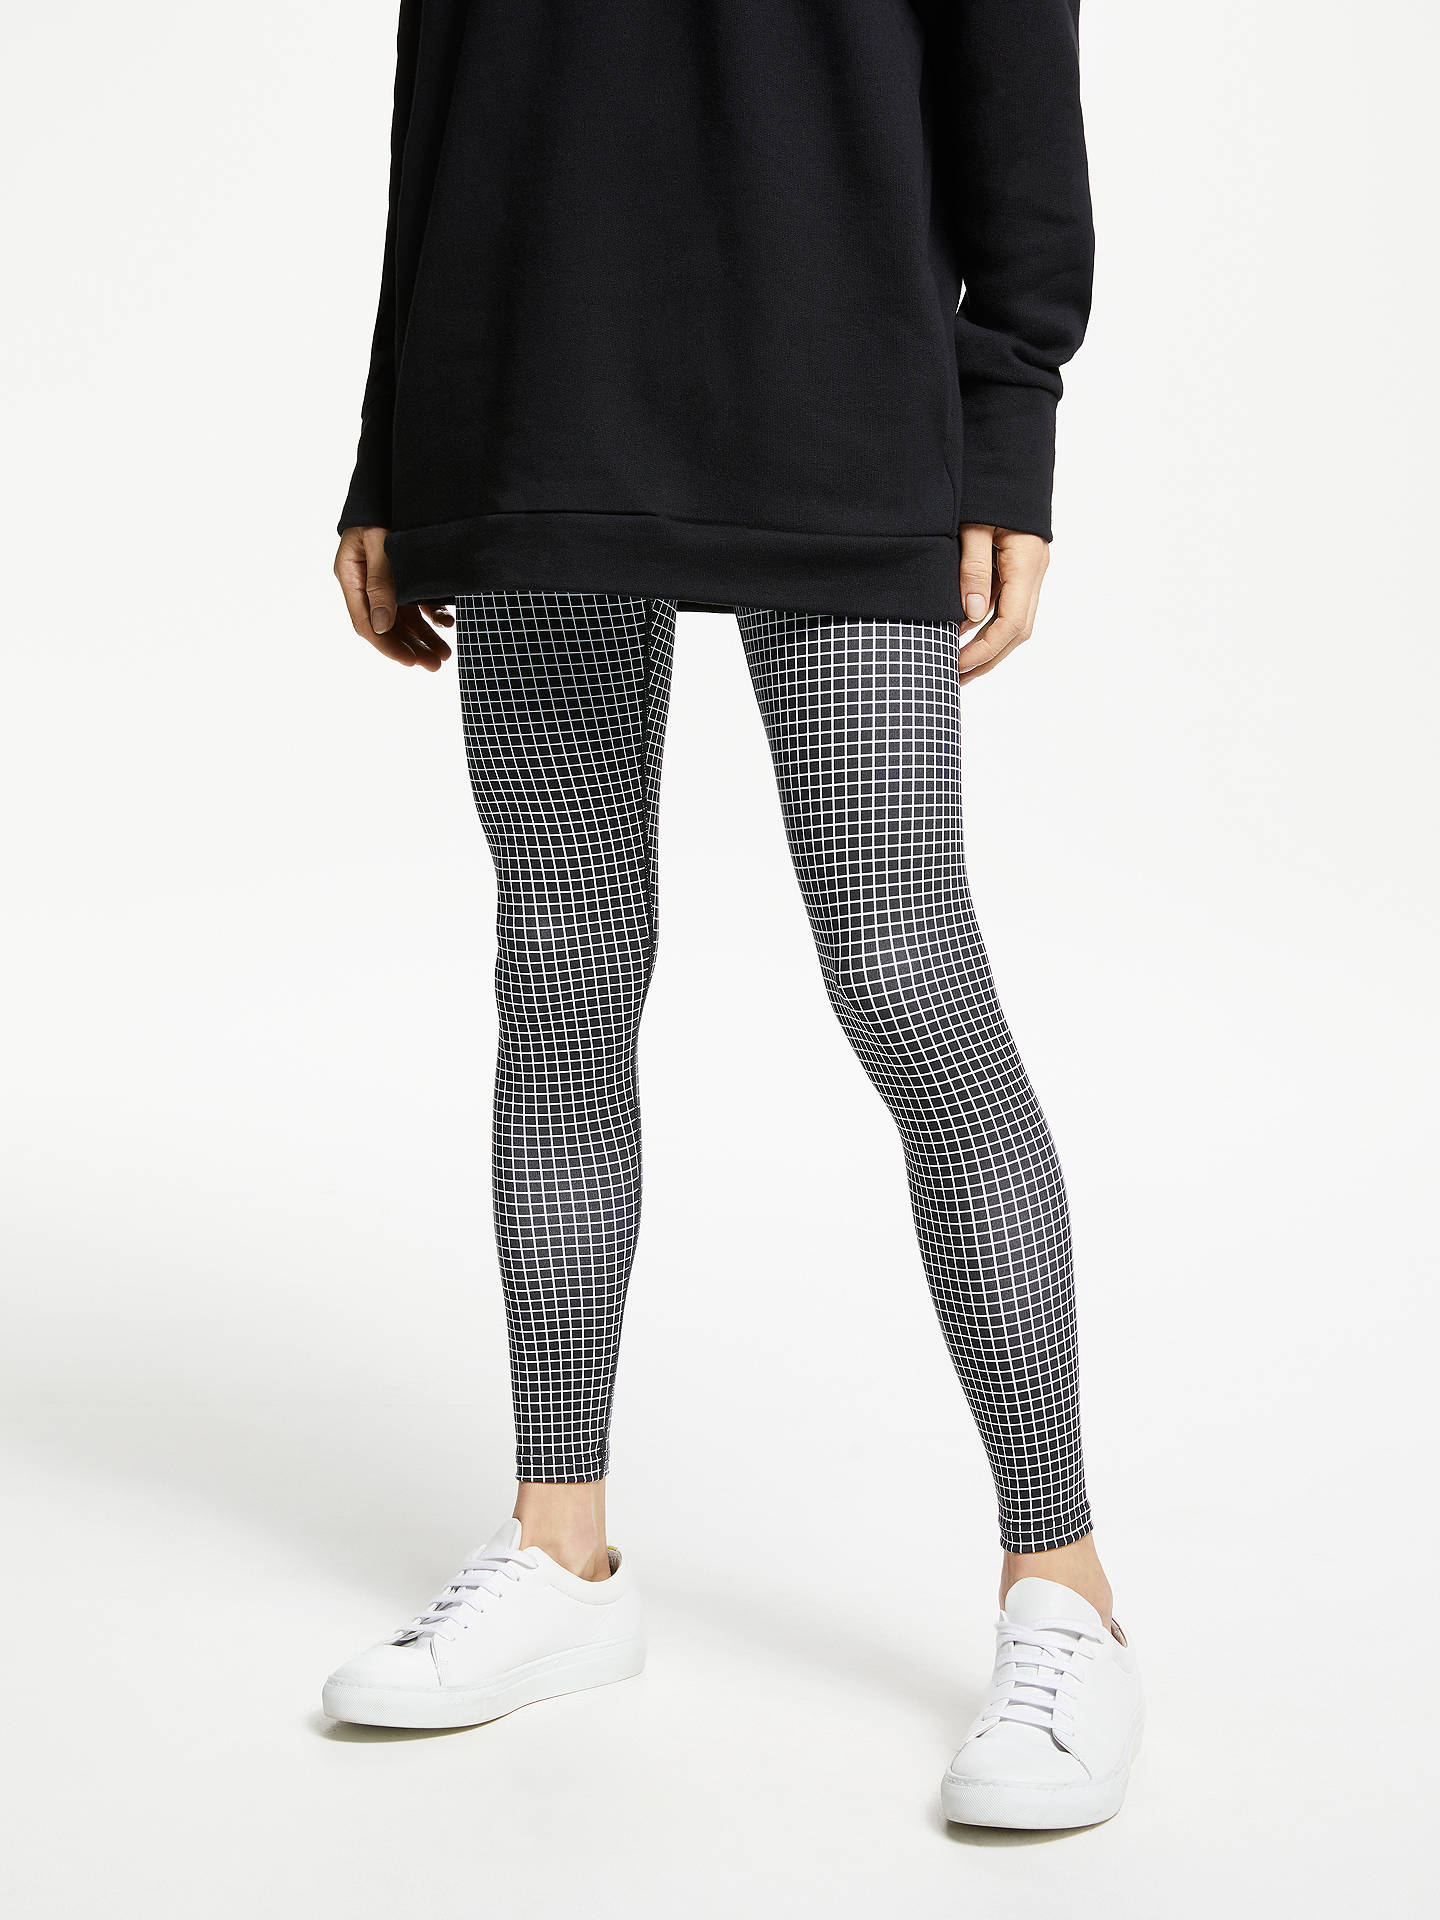 Buy PATTERNITY + John Lewis Grid Print Leggings, Black/White, M Online at johnlewis.com